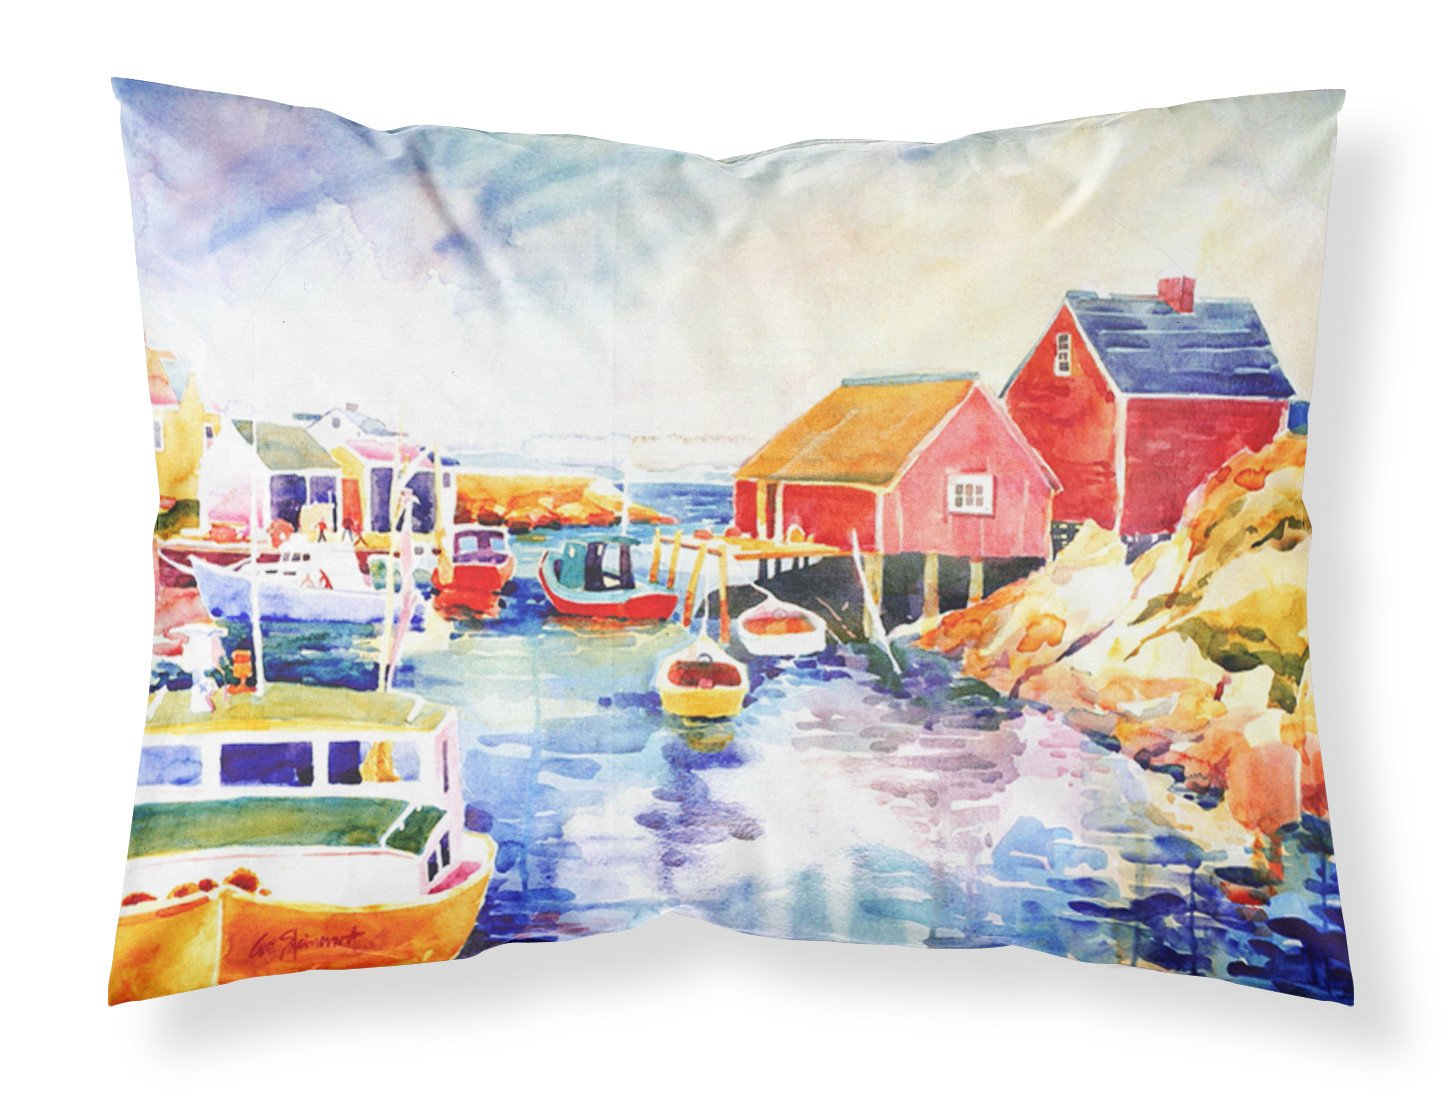 Boats at Harbour with a view Moisture wicking Fabric standard pillowcase by Caroline's Treasures